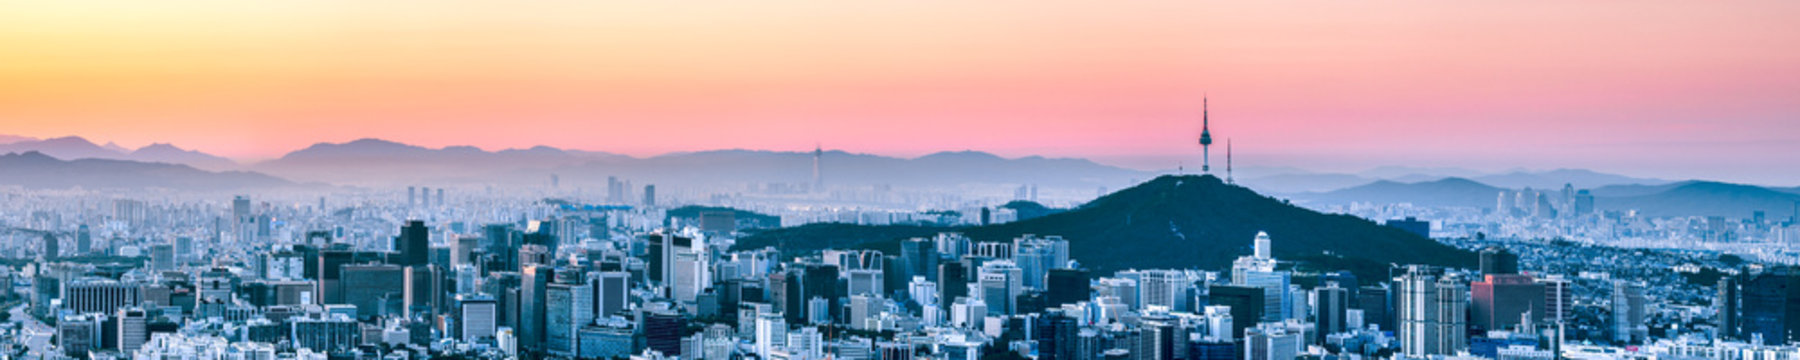 Seoul Panorama im Winter